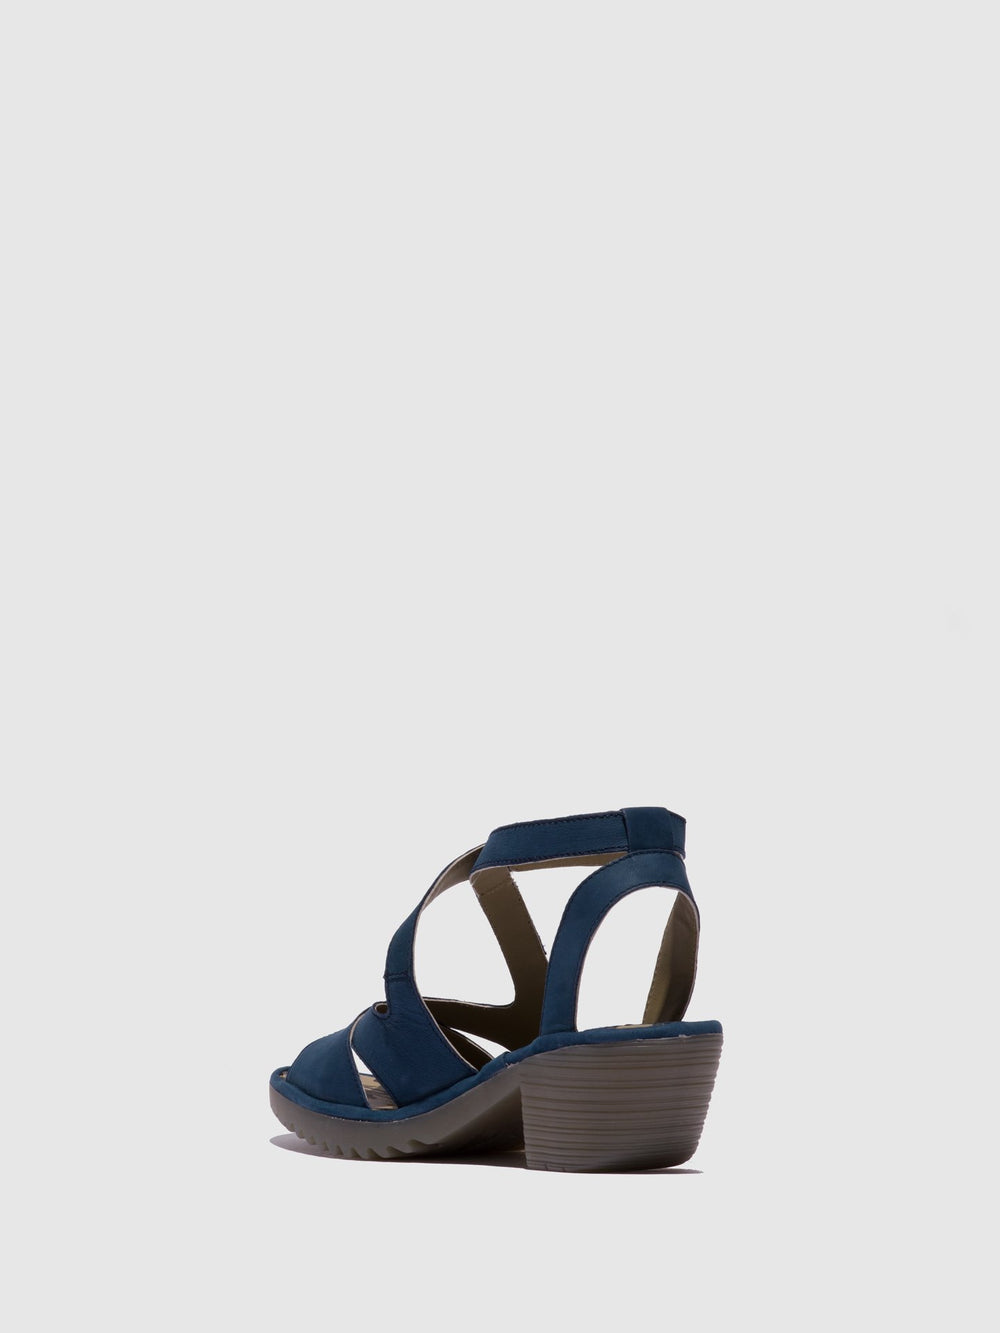 Ankle Strap Sandals WAFE152FLY BLUE